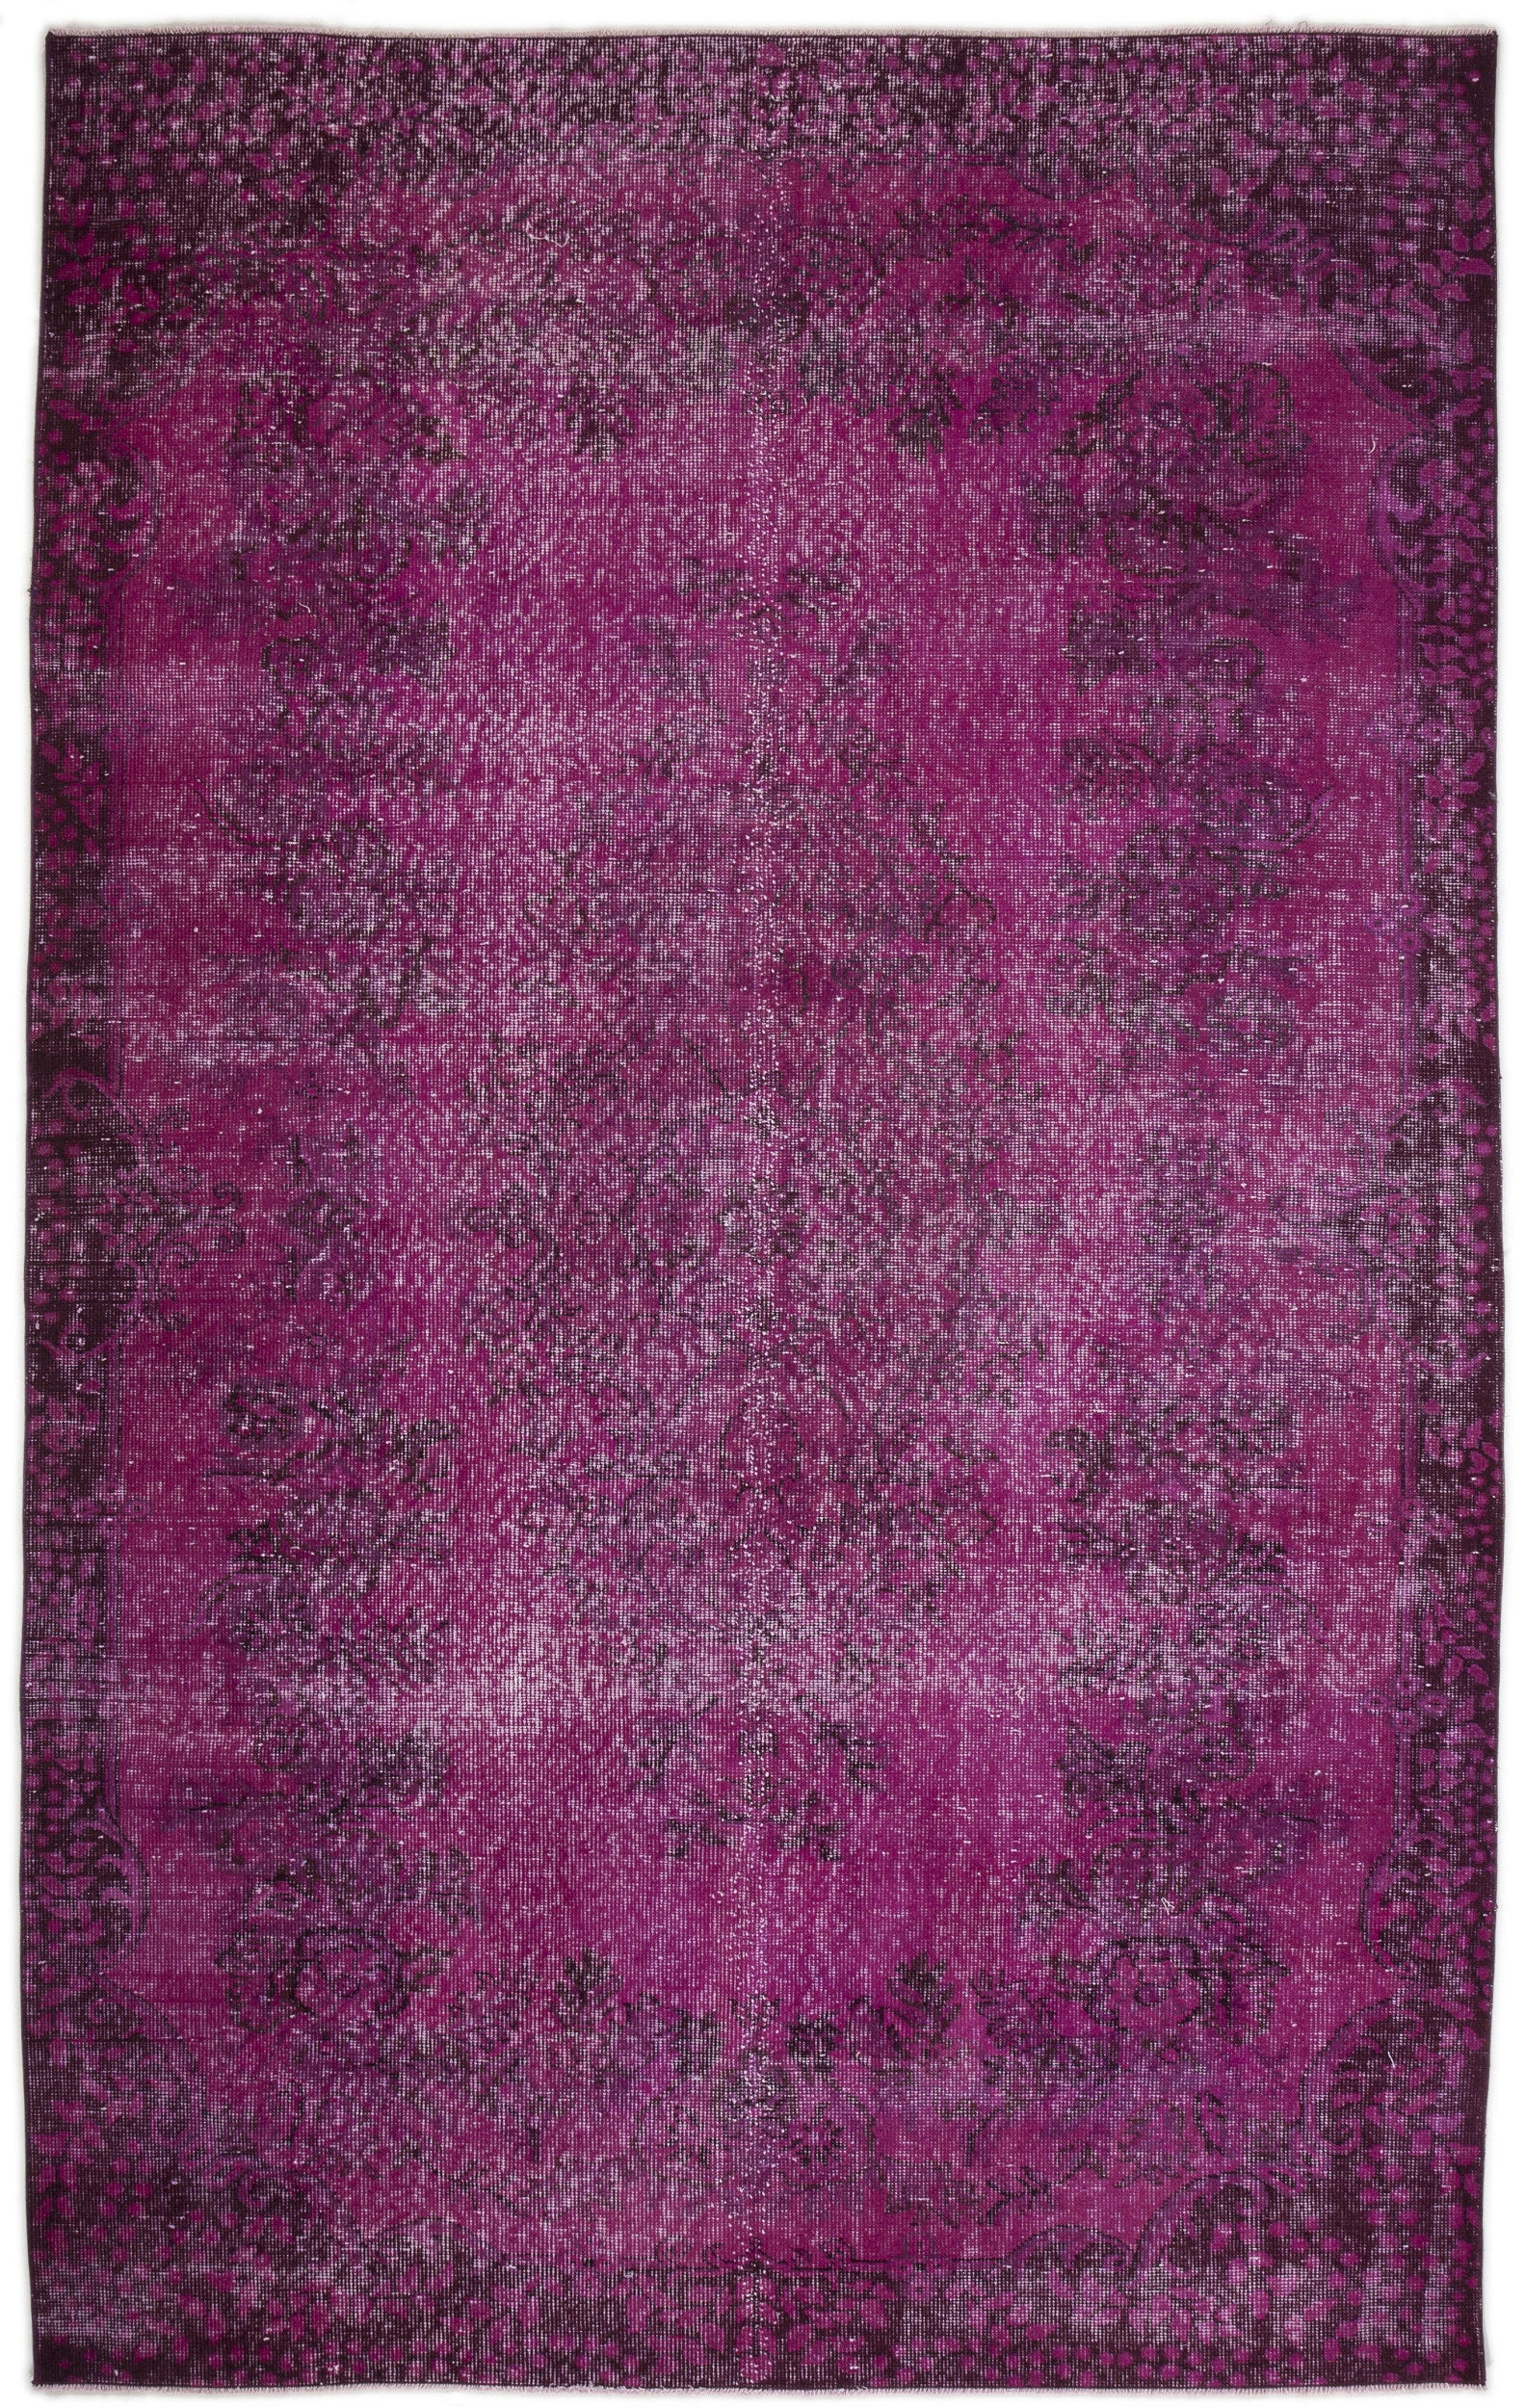 Fuchsia Over Dyed Vintage Rug 5'8'' x 9'1'' ft 172 x 277 cm